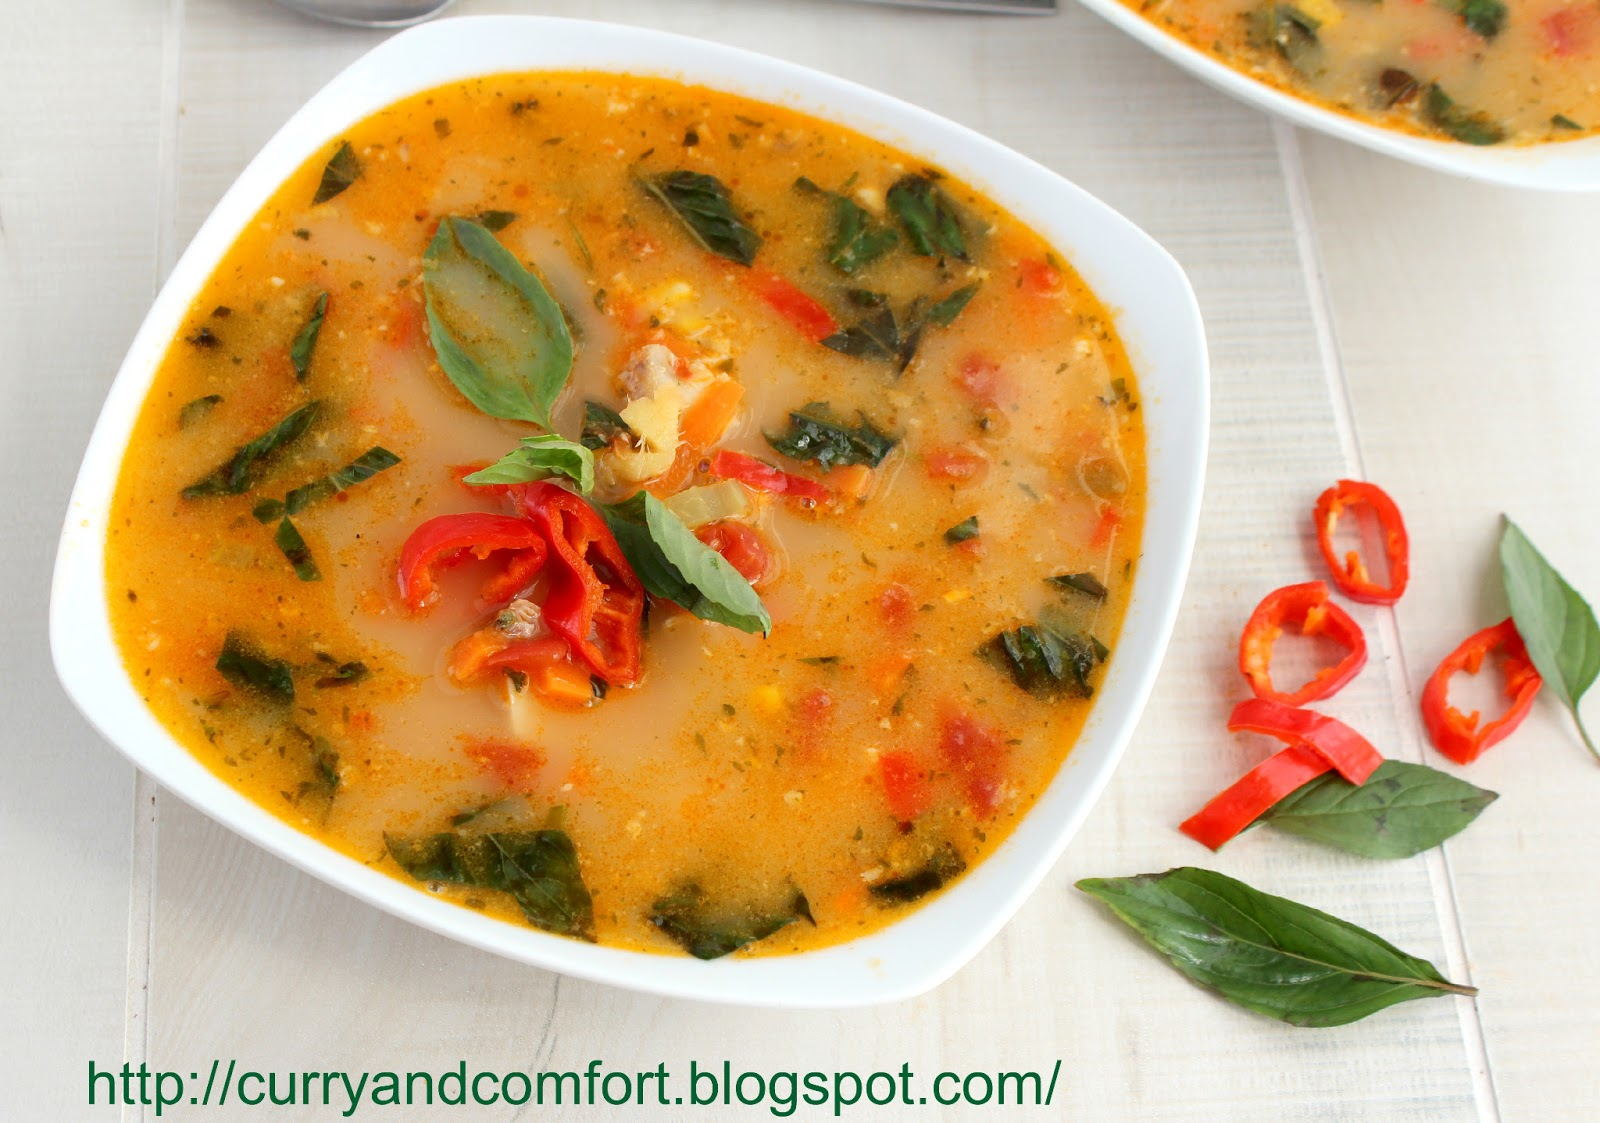 Kitchen Simmer: Thai Red Curry Chicken and Corn Soup